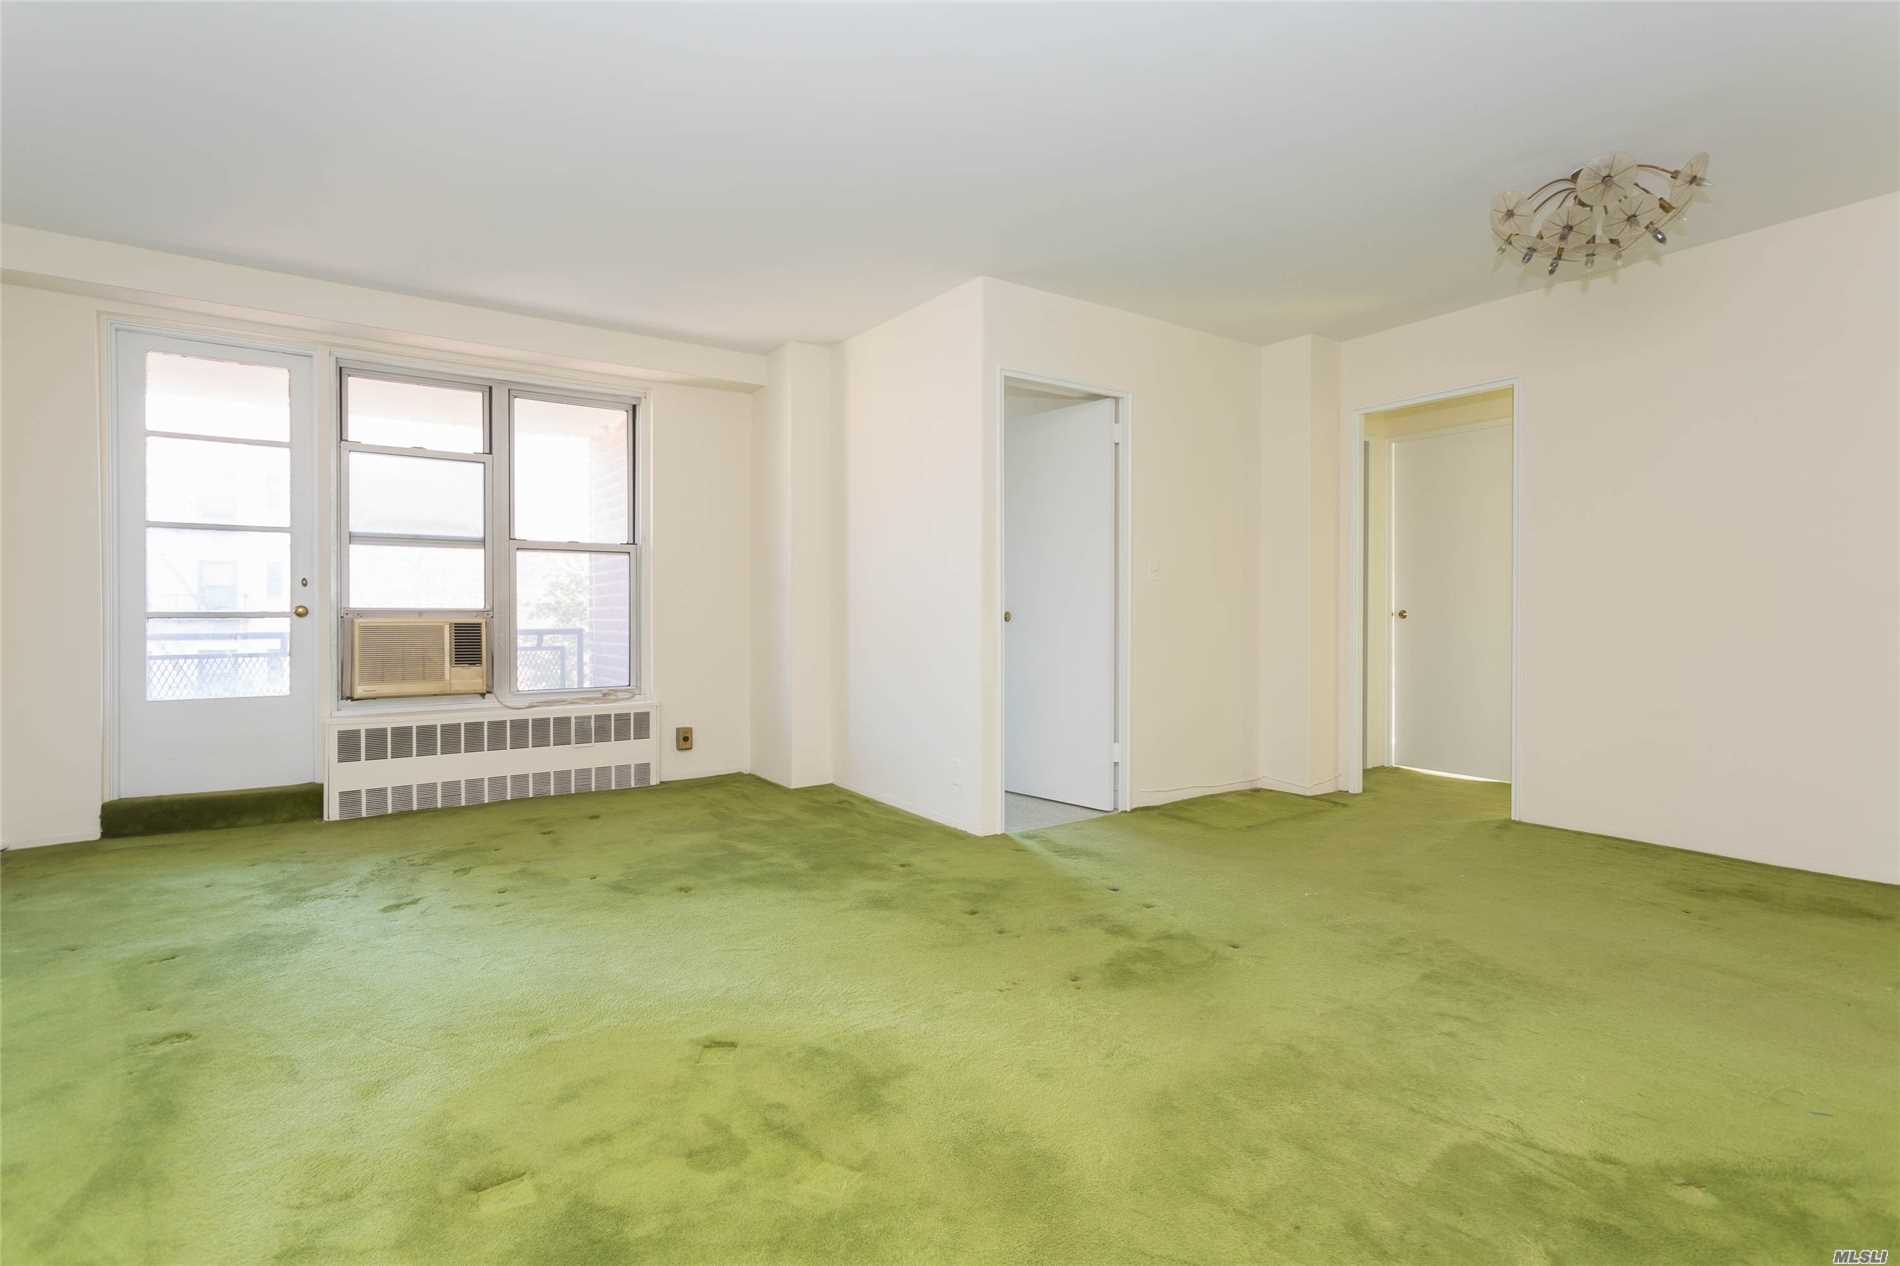 Move Right In To This Spacious 2Br/1 Bathroom Co-Op In Jackson Heights Featuring Spacious Bedrooms And Living Room, Terrace And Plenty Of Closets! Close To Shopping And Transportation